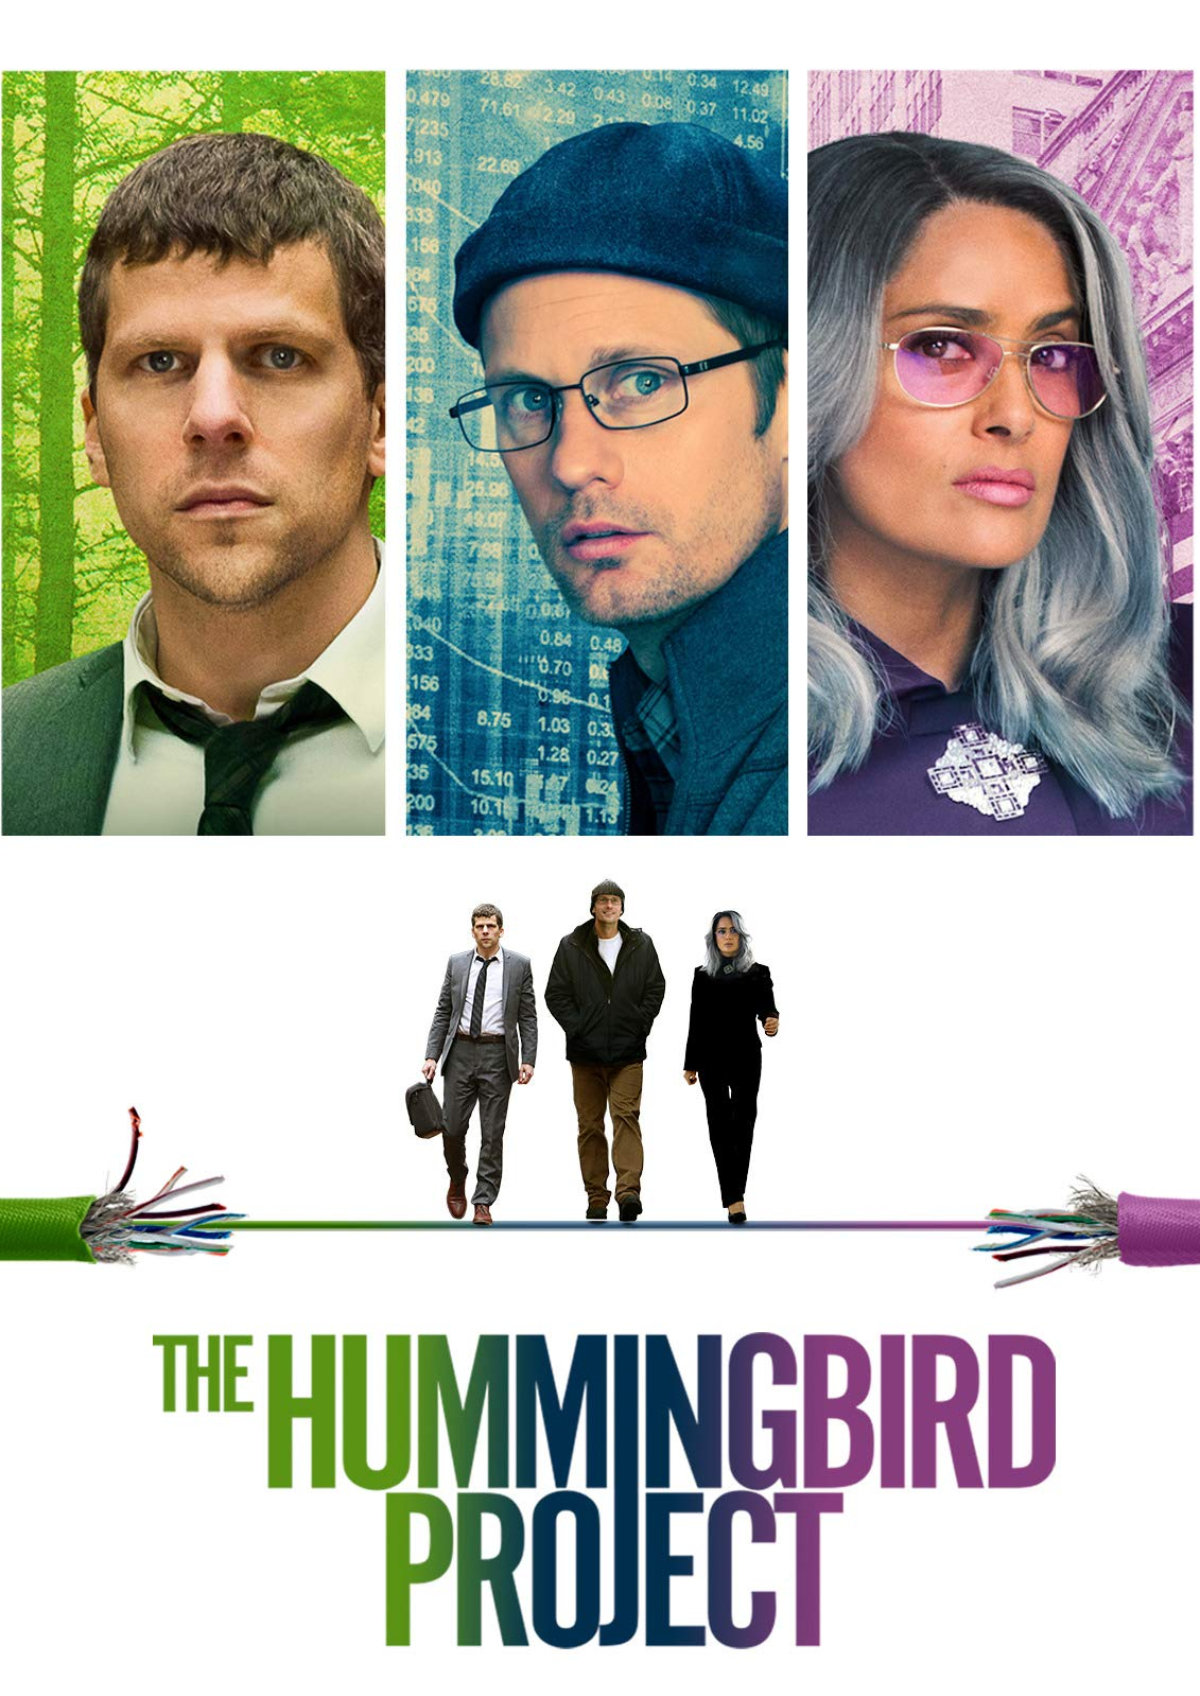 'The Hummingbird Project' movie poster